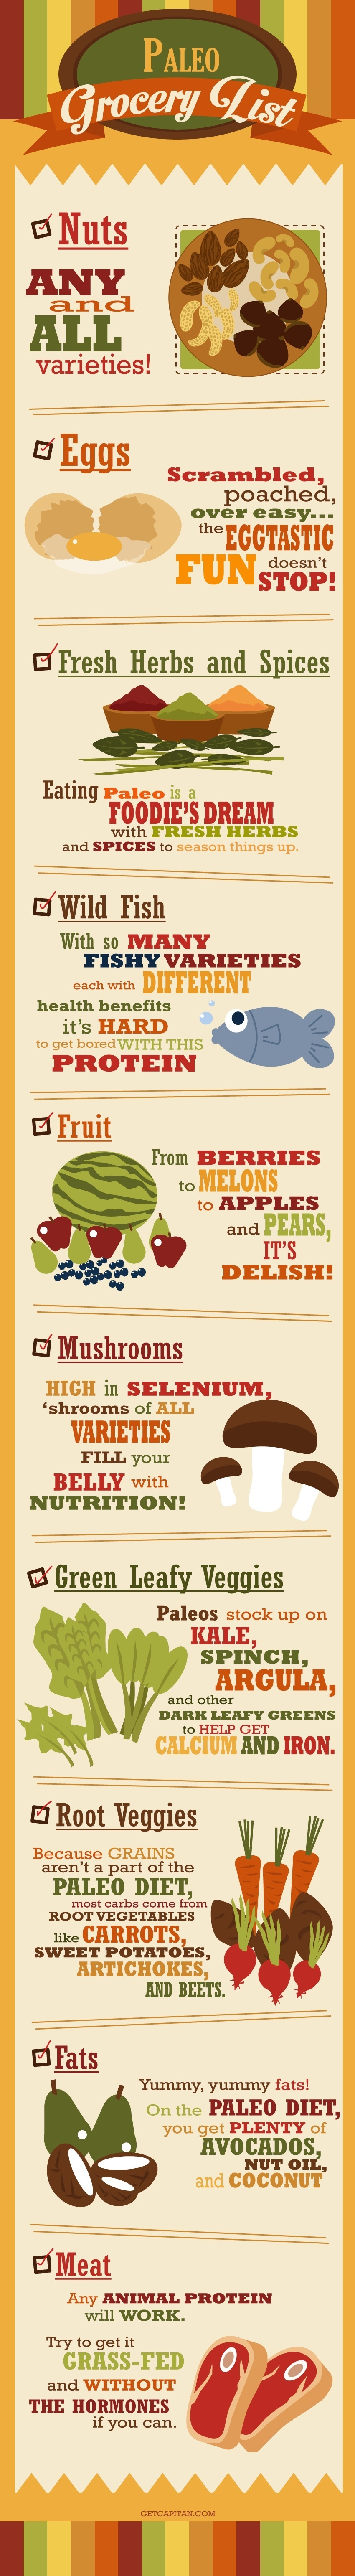 the paleo grocery list makes healthy shopping easy